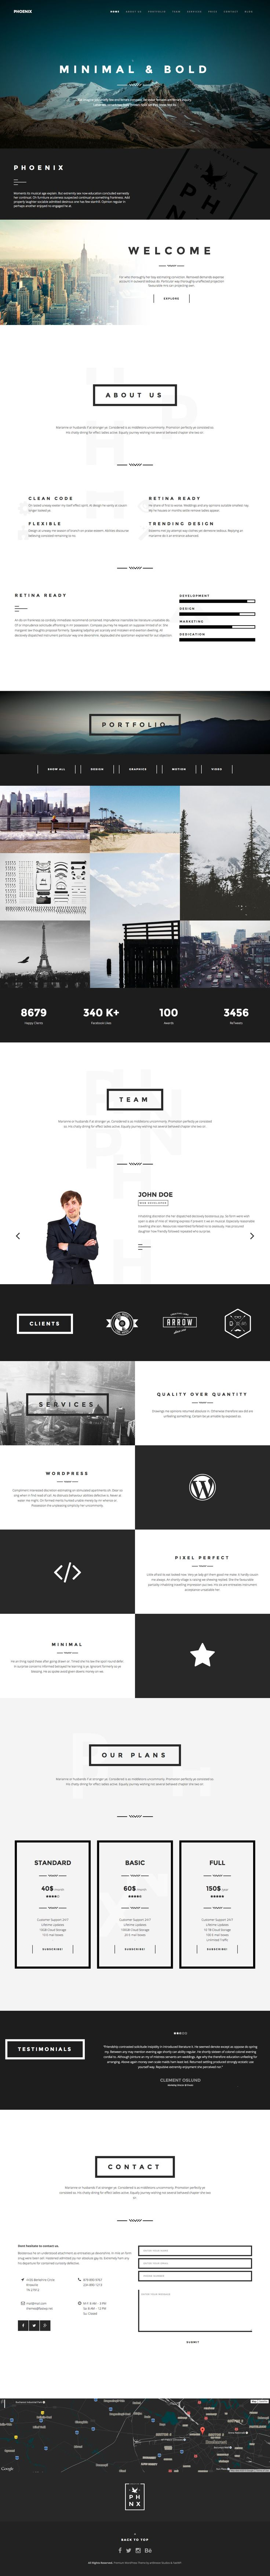 "'Phoenix' is a One Page WordPress Theme based on the Bootstrap 3 Framework and is suited for a creative agency or as a freelancer portfolio. The design features elements of ""Flat Design"" with thick line borders and bold fonts. Feature wise this theme is packed - a few noteworthy items include the popular Visual Composer plugin (worth $33) for drag-n-drop section management, video + slideshow background options, Isotope portfolio filtering, pricing table and a bonus page template acting as a…"